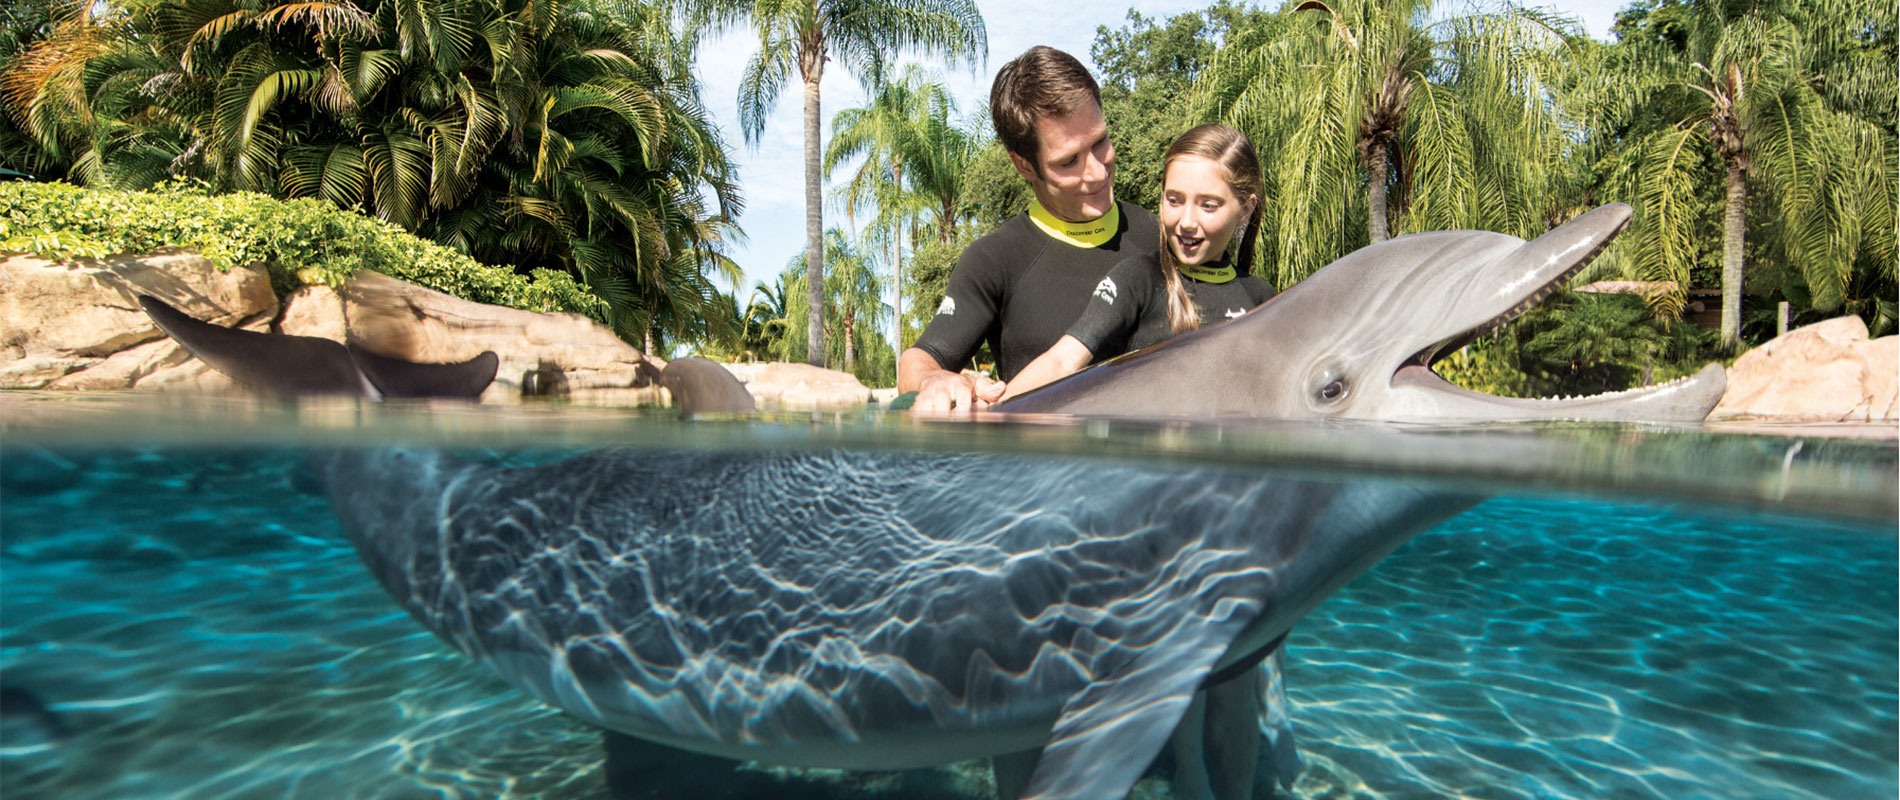 things-to-do-in-orlando-discovery-cove